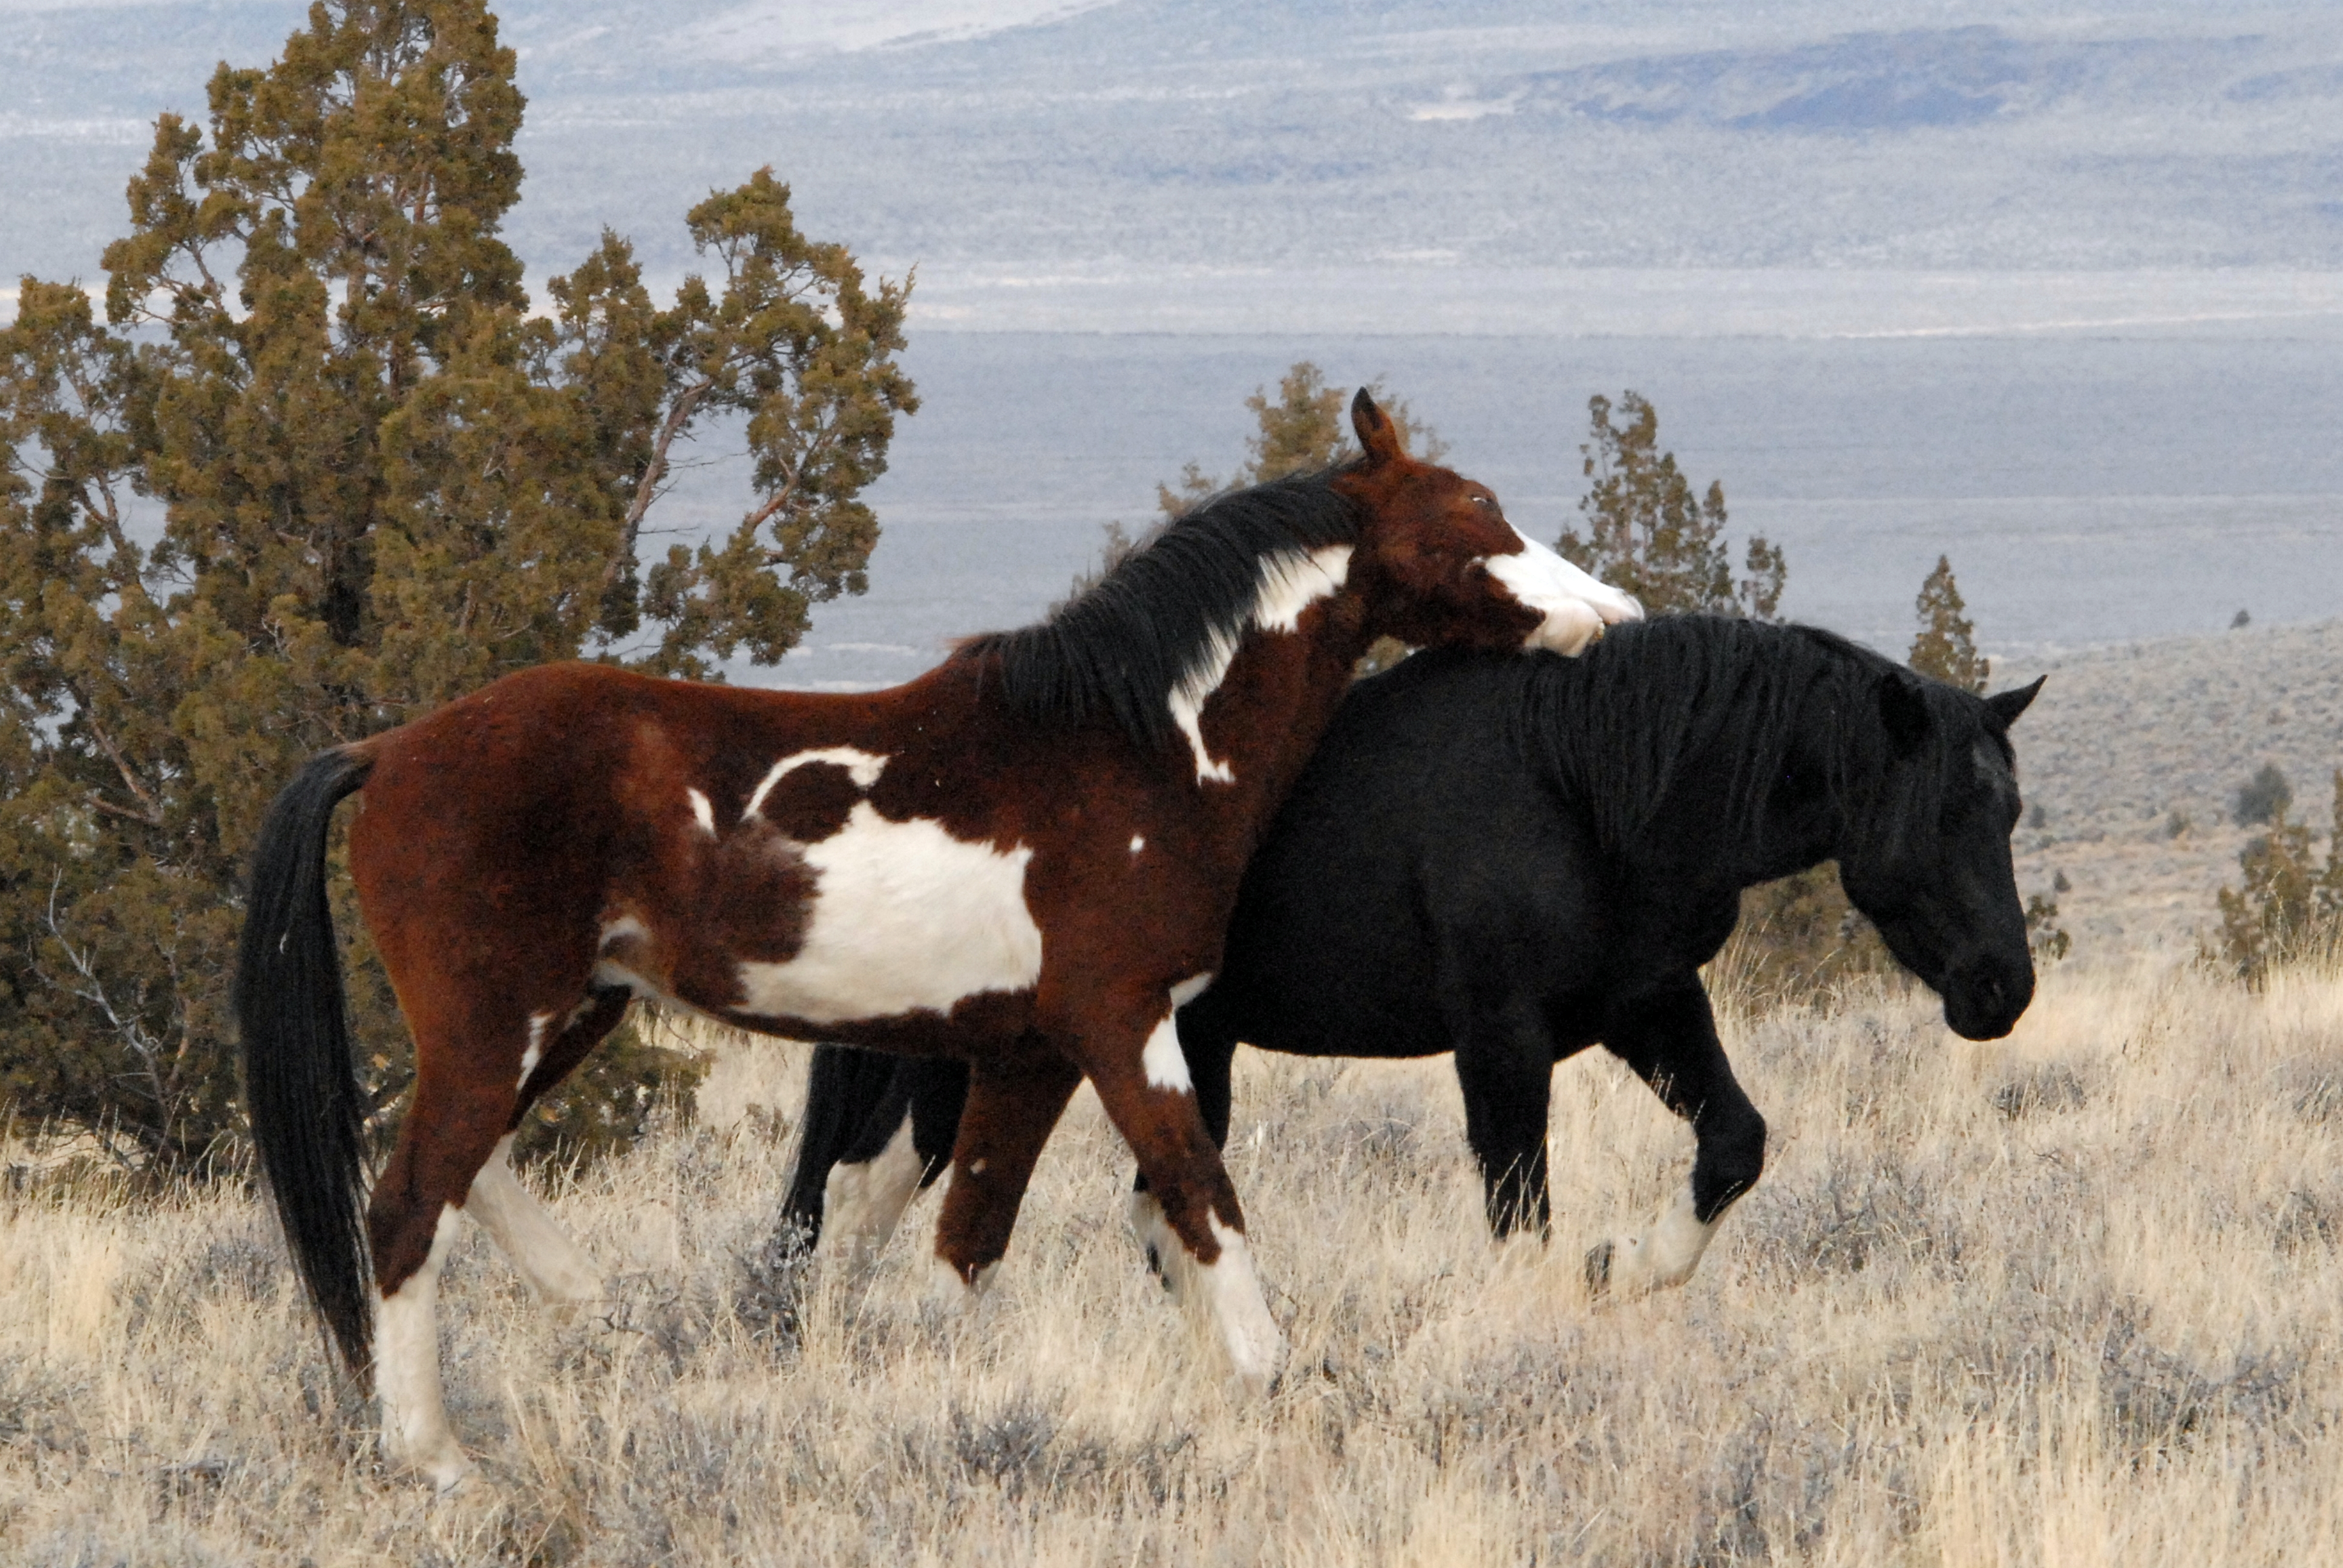 View Topic Thunder Valley Mustangs Realistic Wild Horse